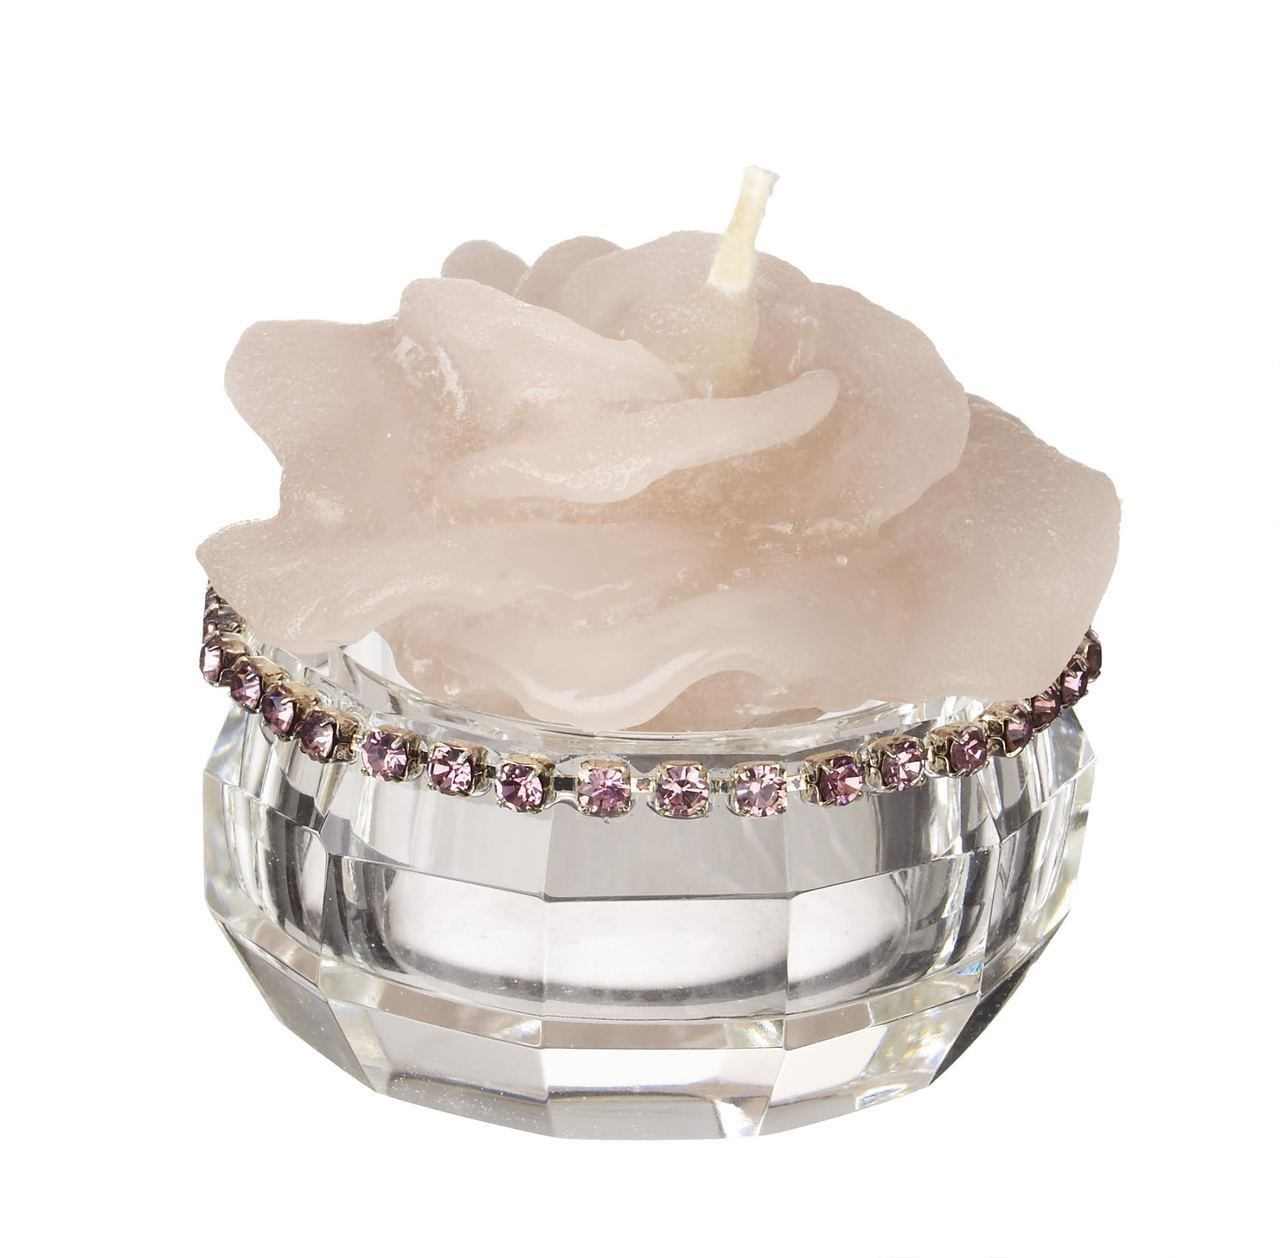 Italian Crystal Tealight Candle Holder with Pink Rhinestones